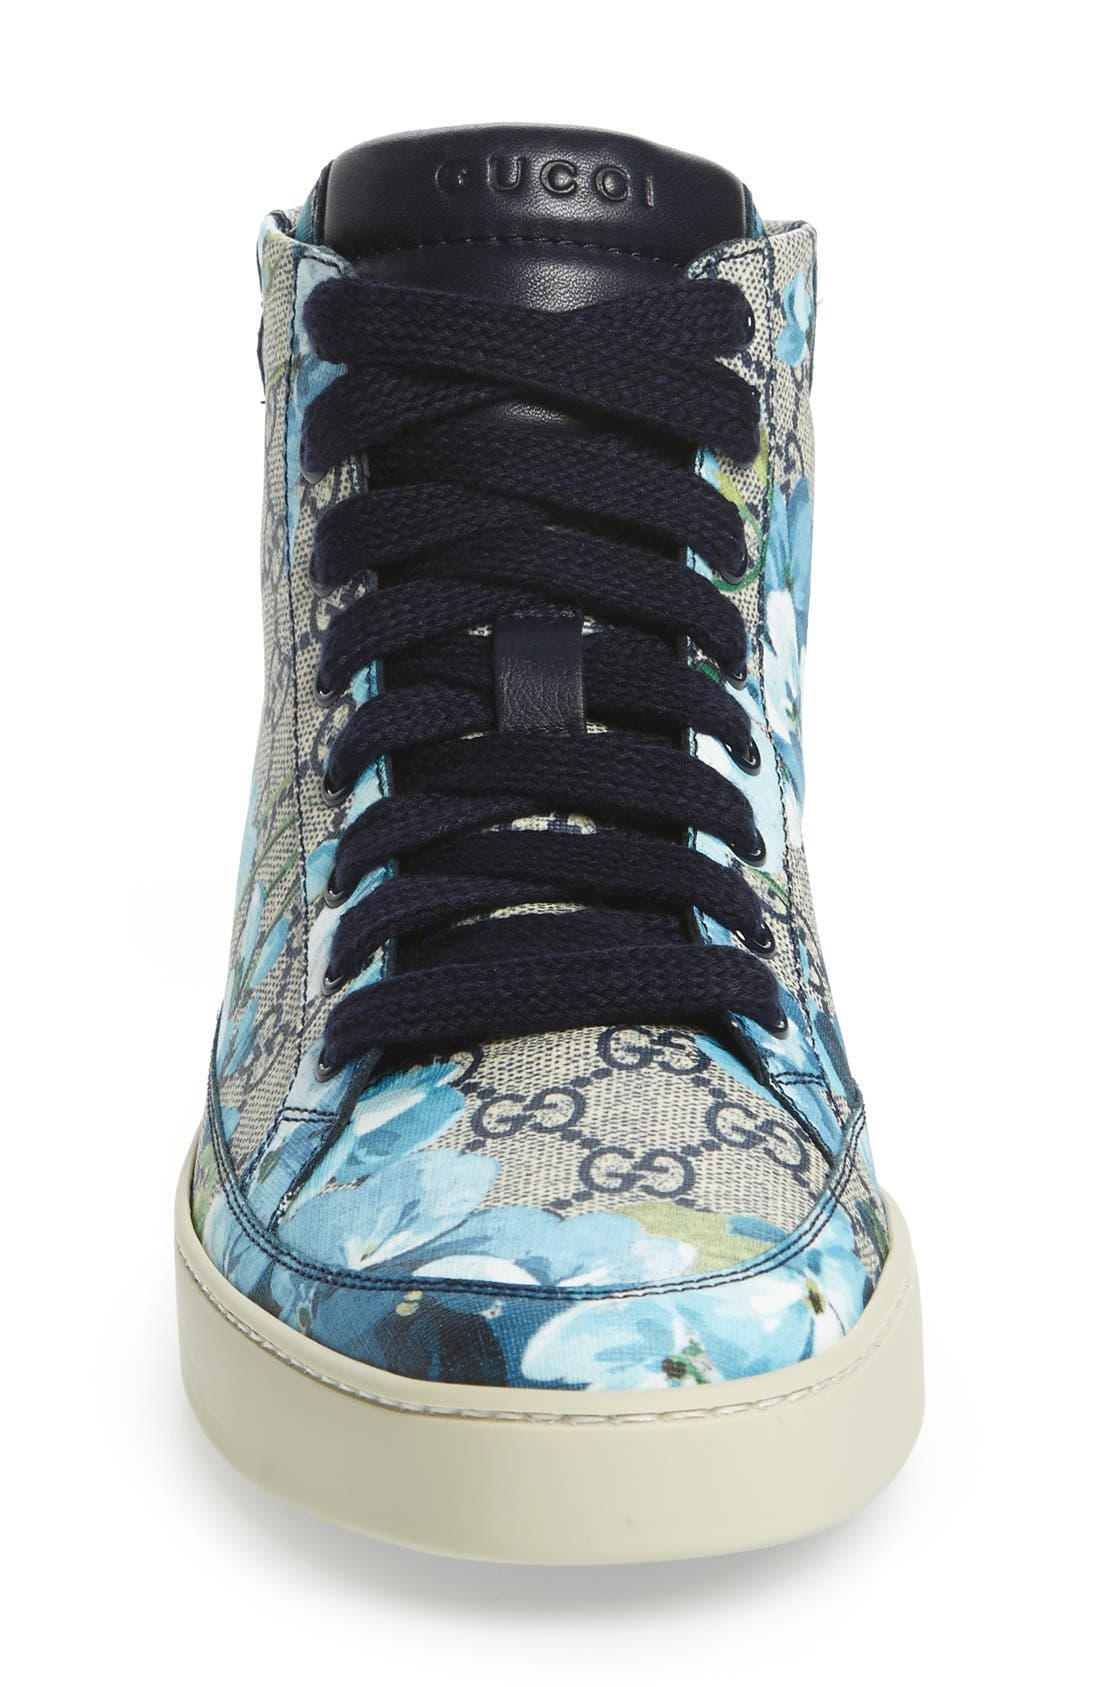 'Common' High Top Sneaker,                             Alternate thumbnail 3, color,                             Blue/ Beige Fabric/ Leather